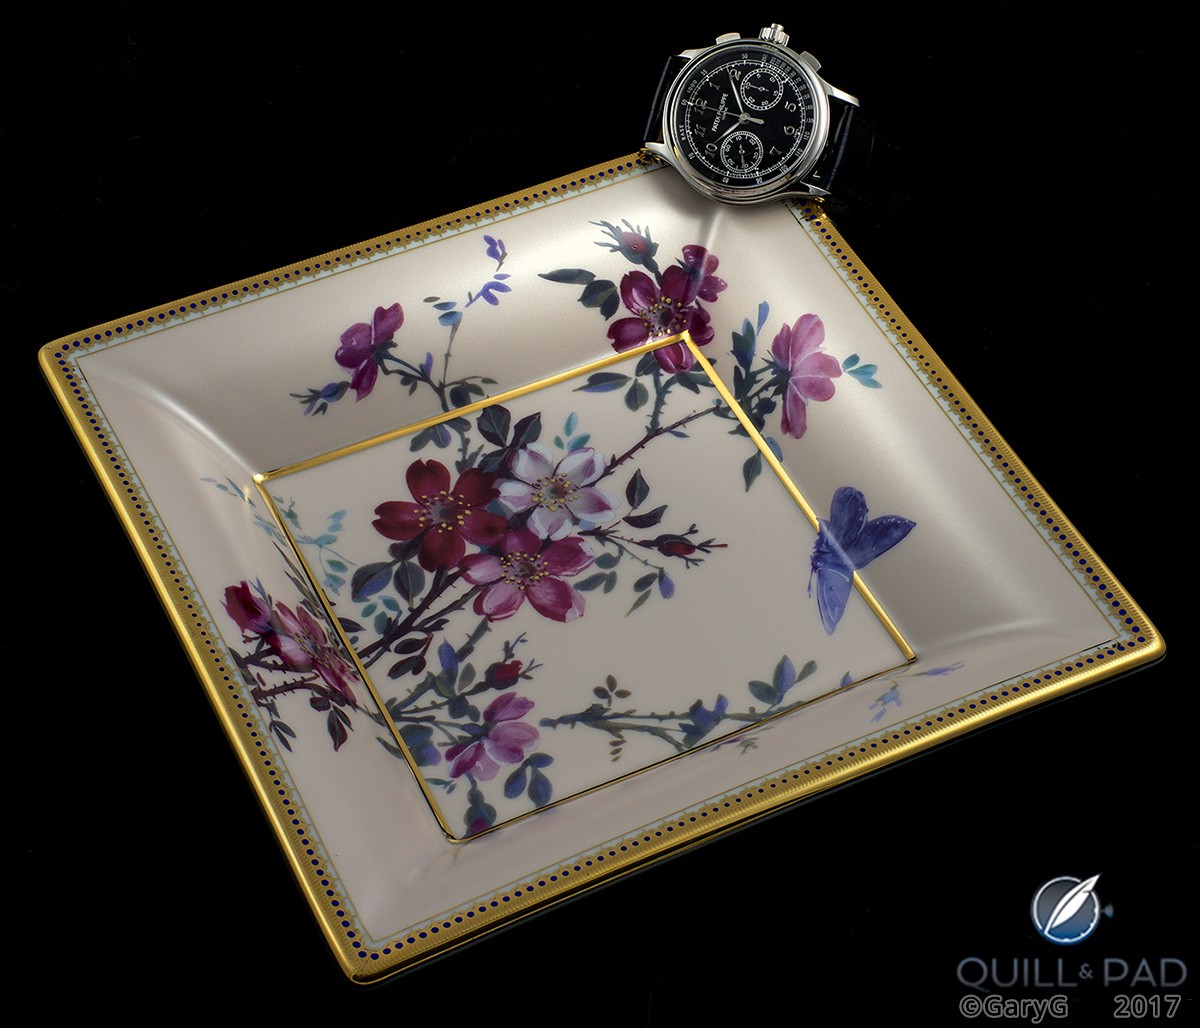 Part of the Patek Philippe experience: the author's Reference 5370P and Patek Philippe-themed dish made by Limoges